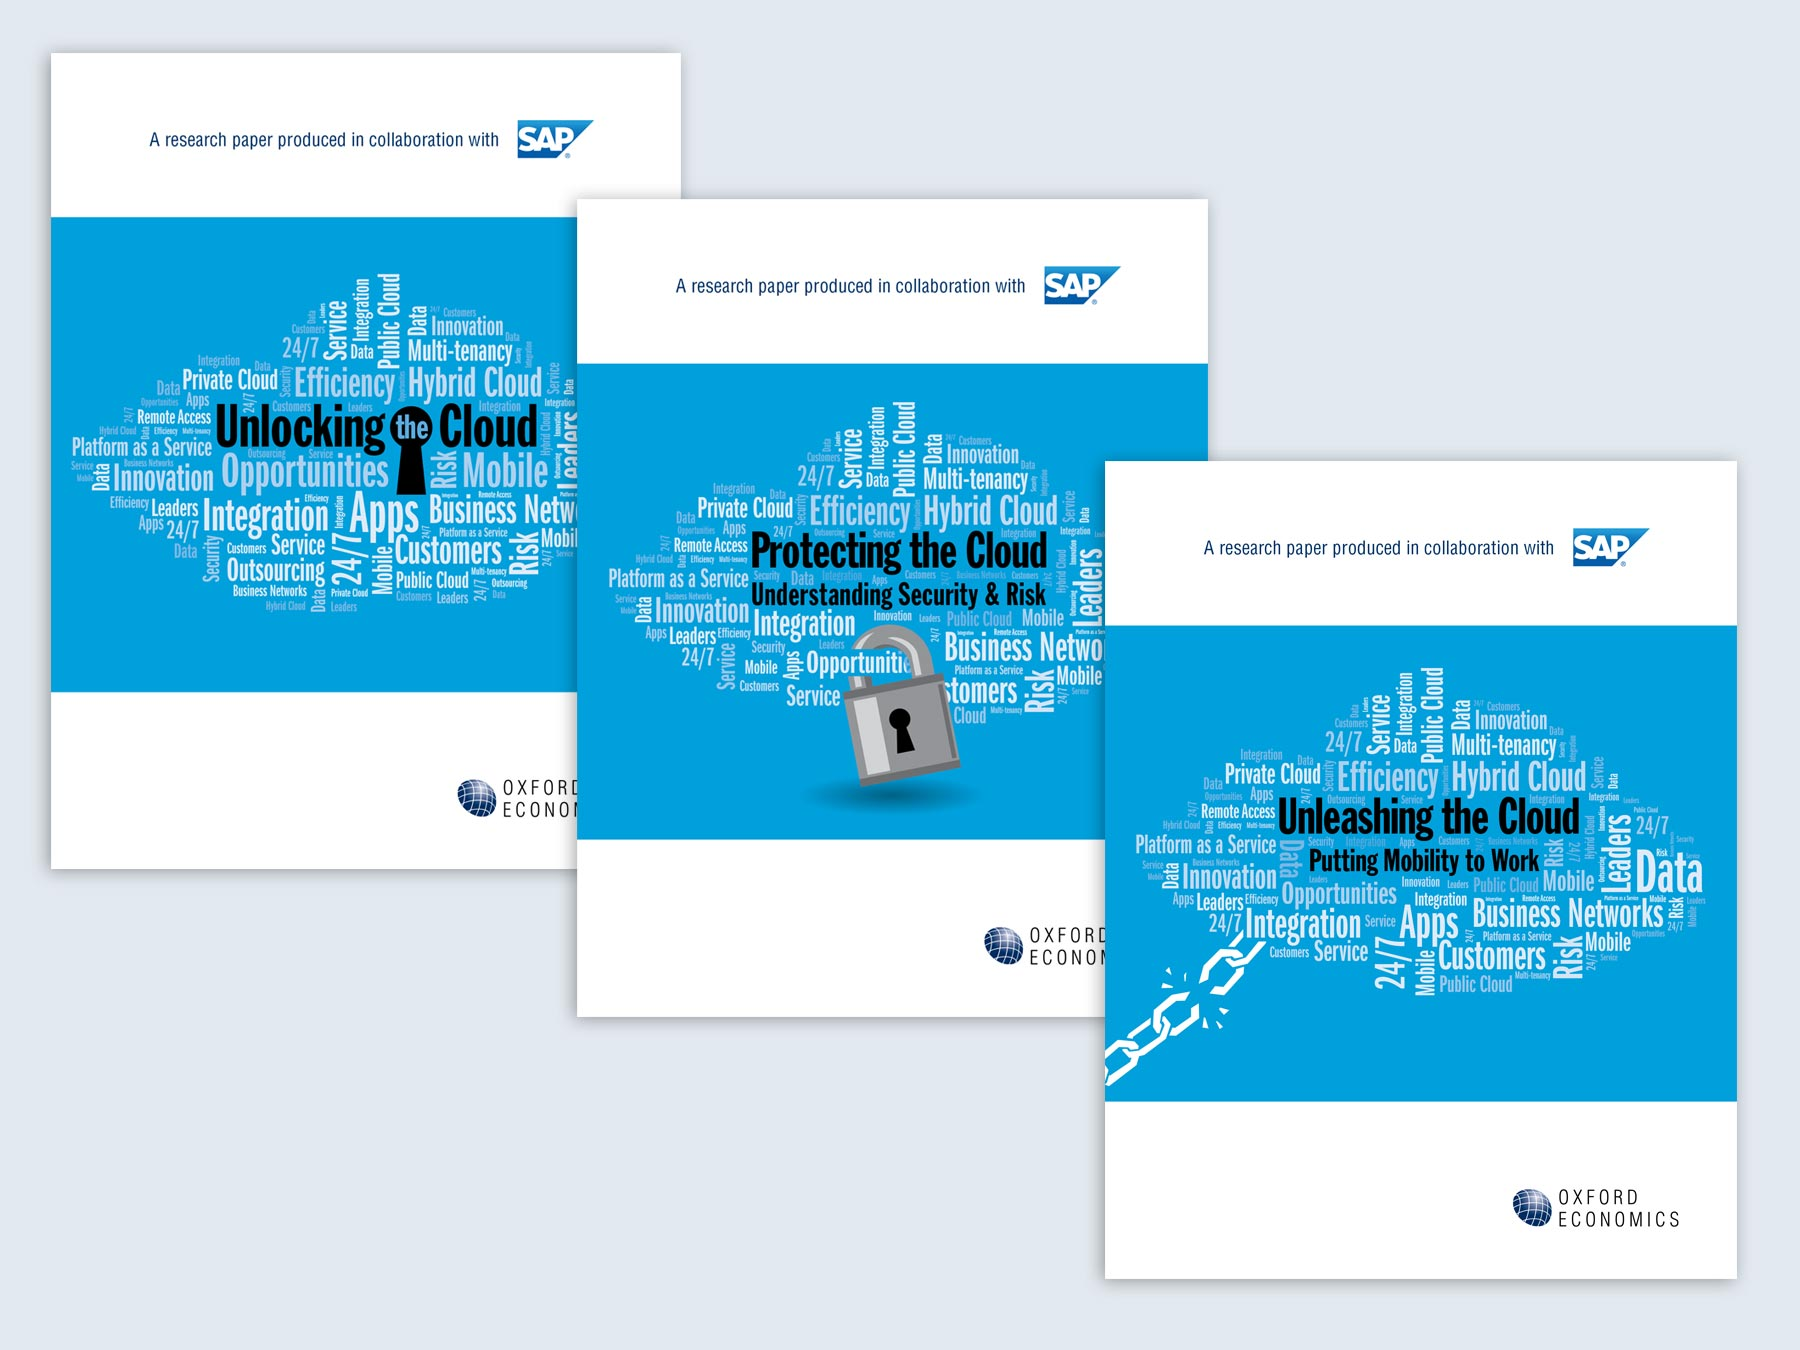 Series Of Reports For SAP